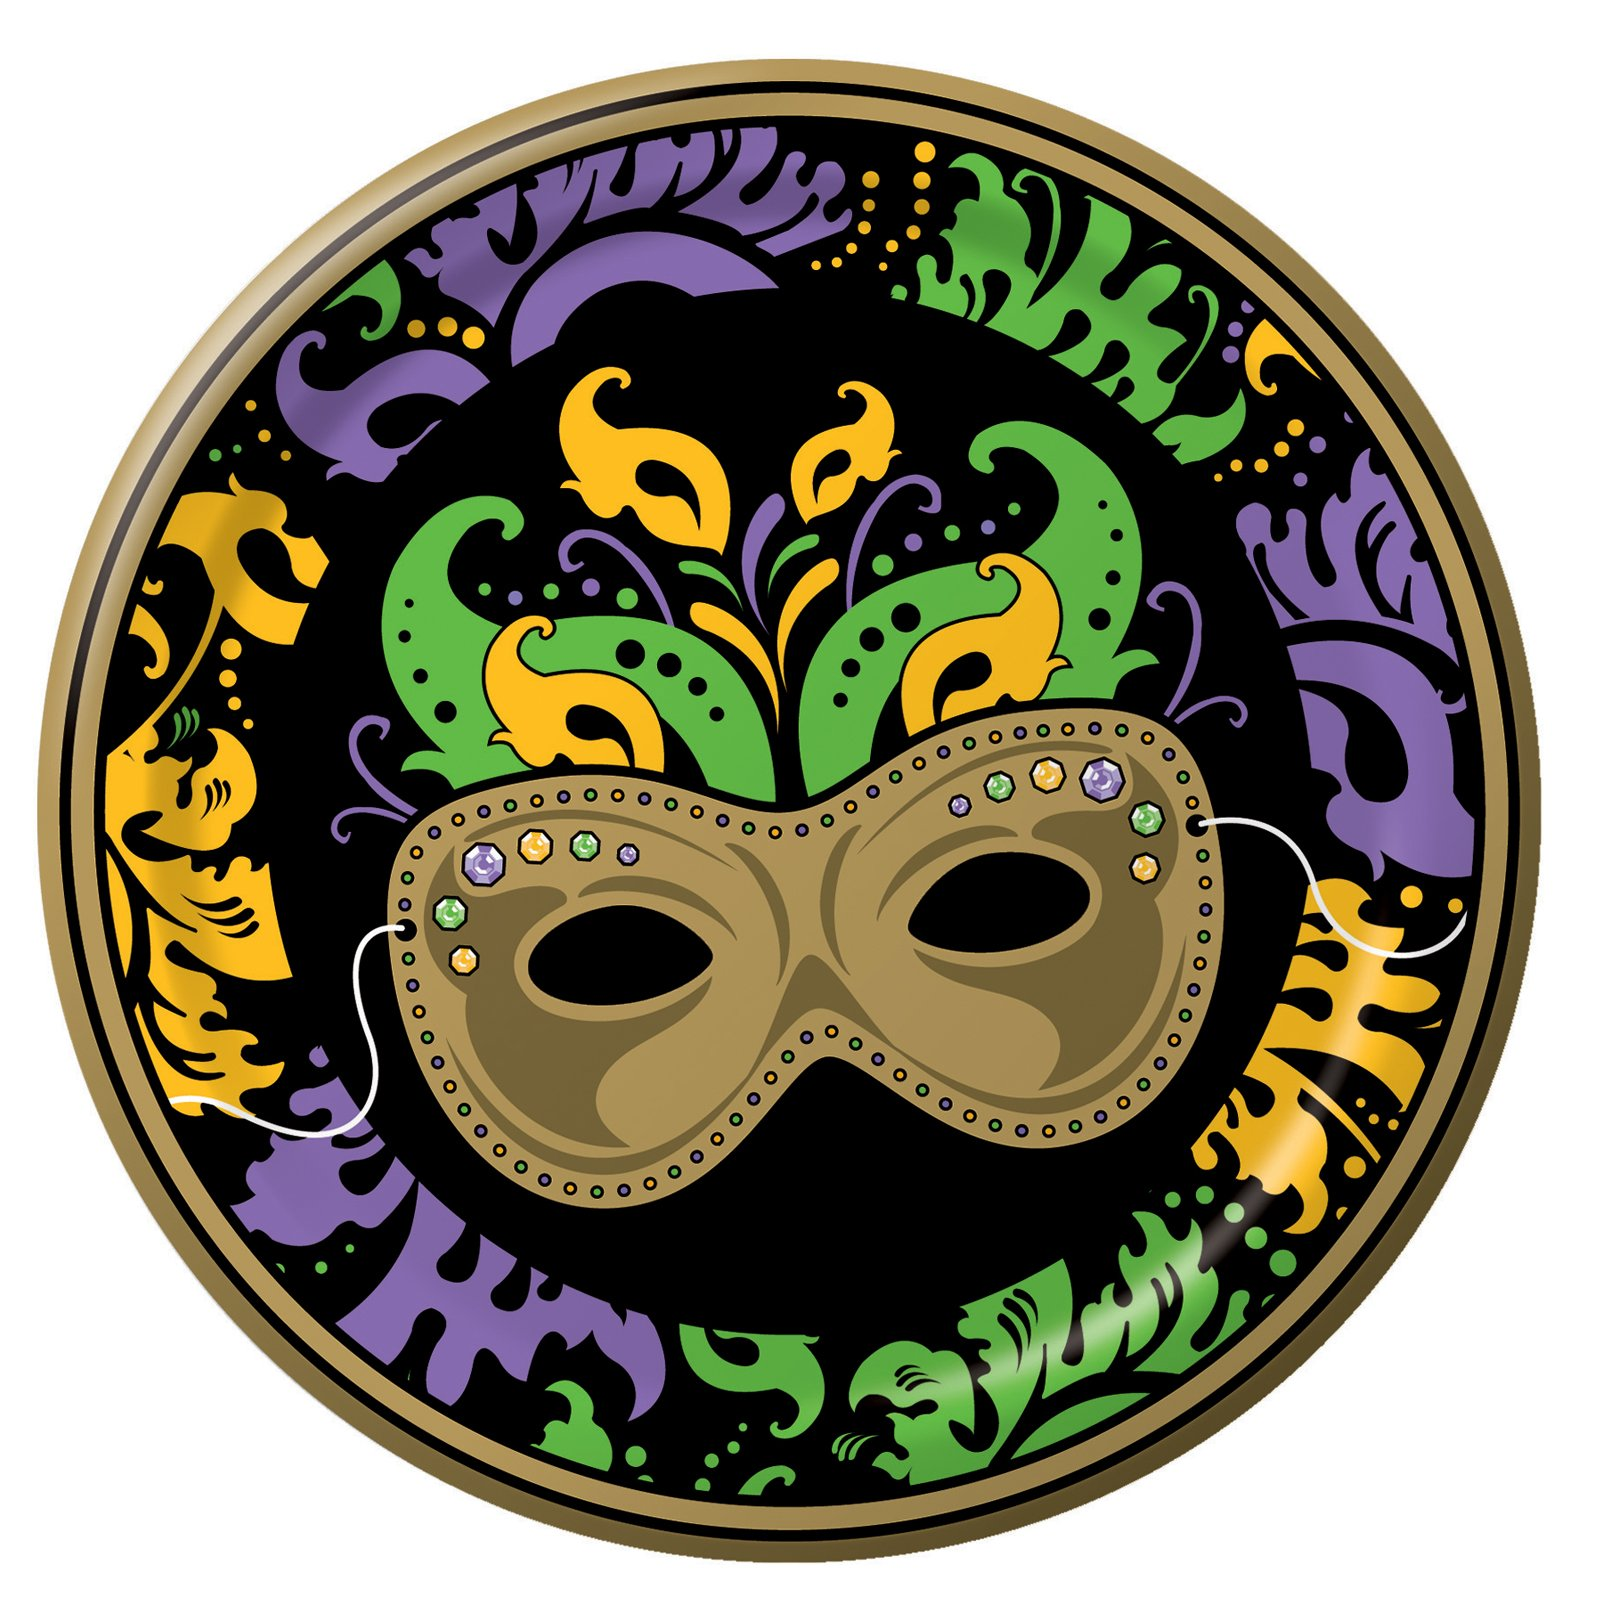 Mardi Gras Magic Dinner Plates (8 count)